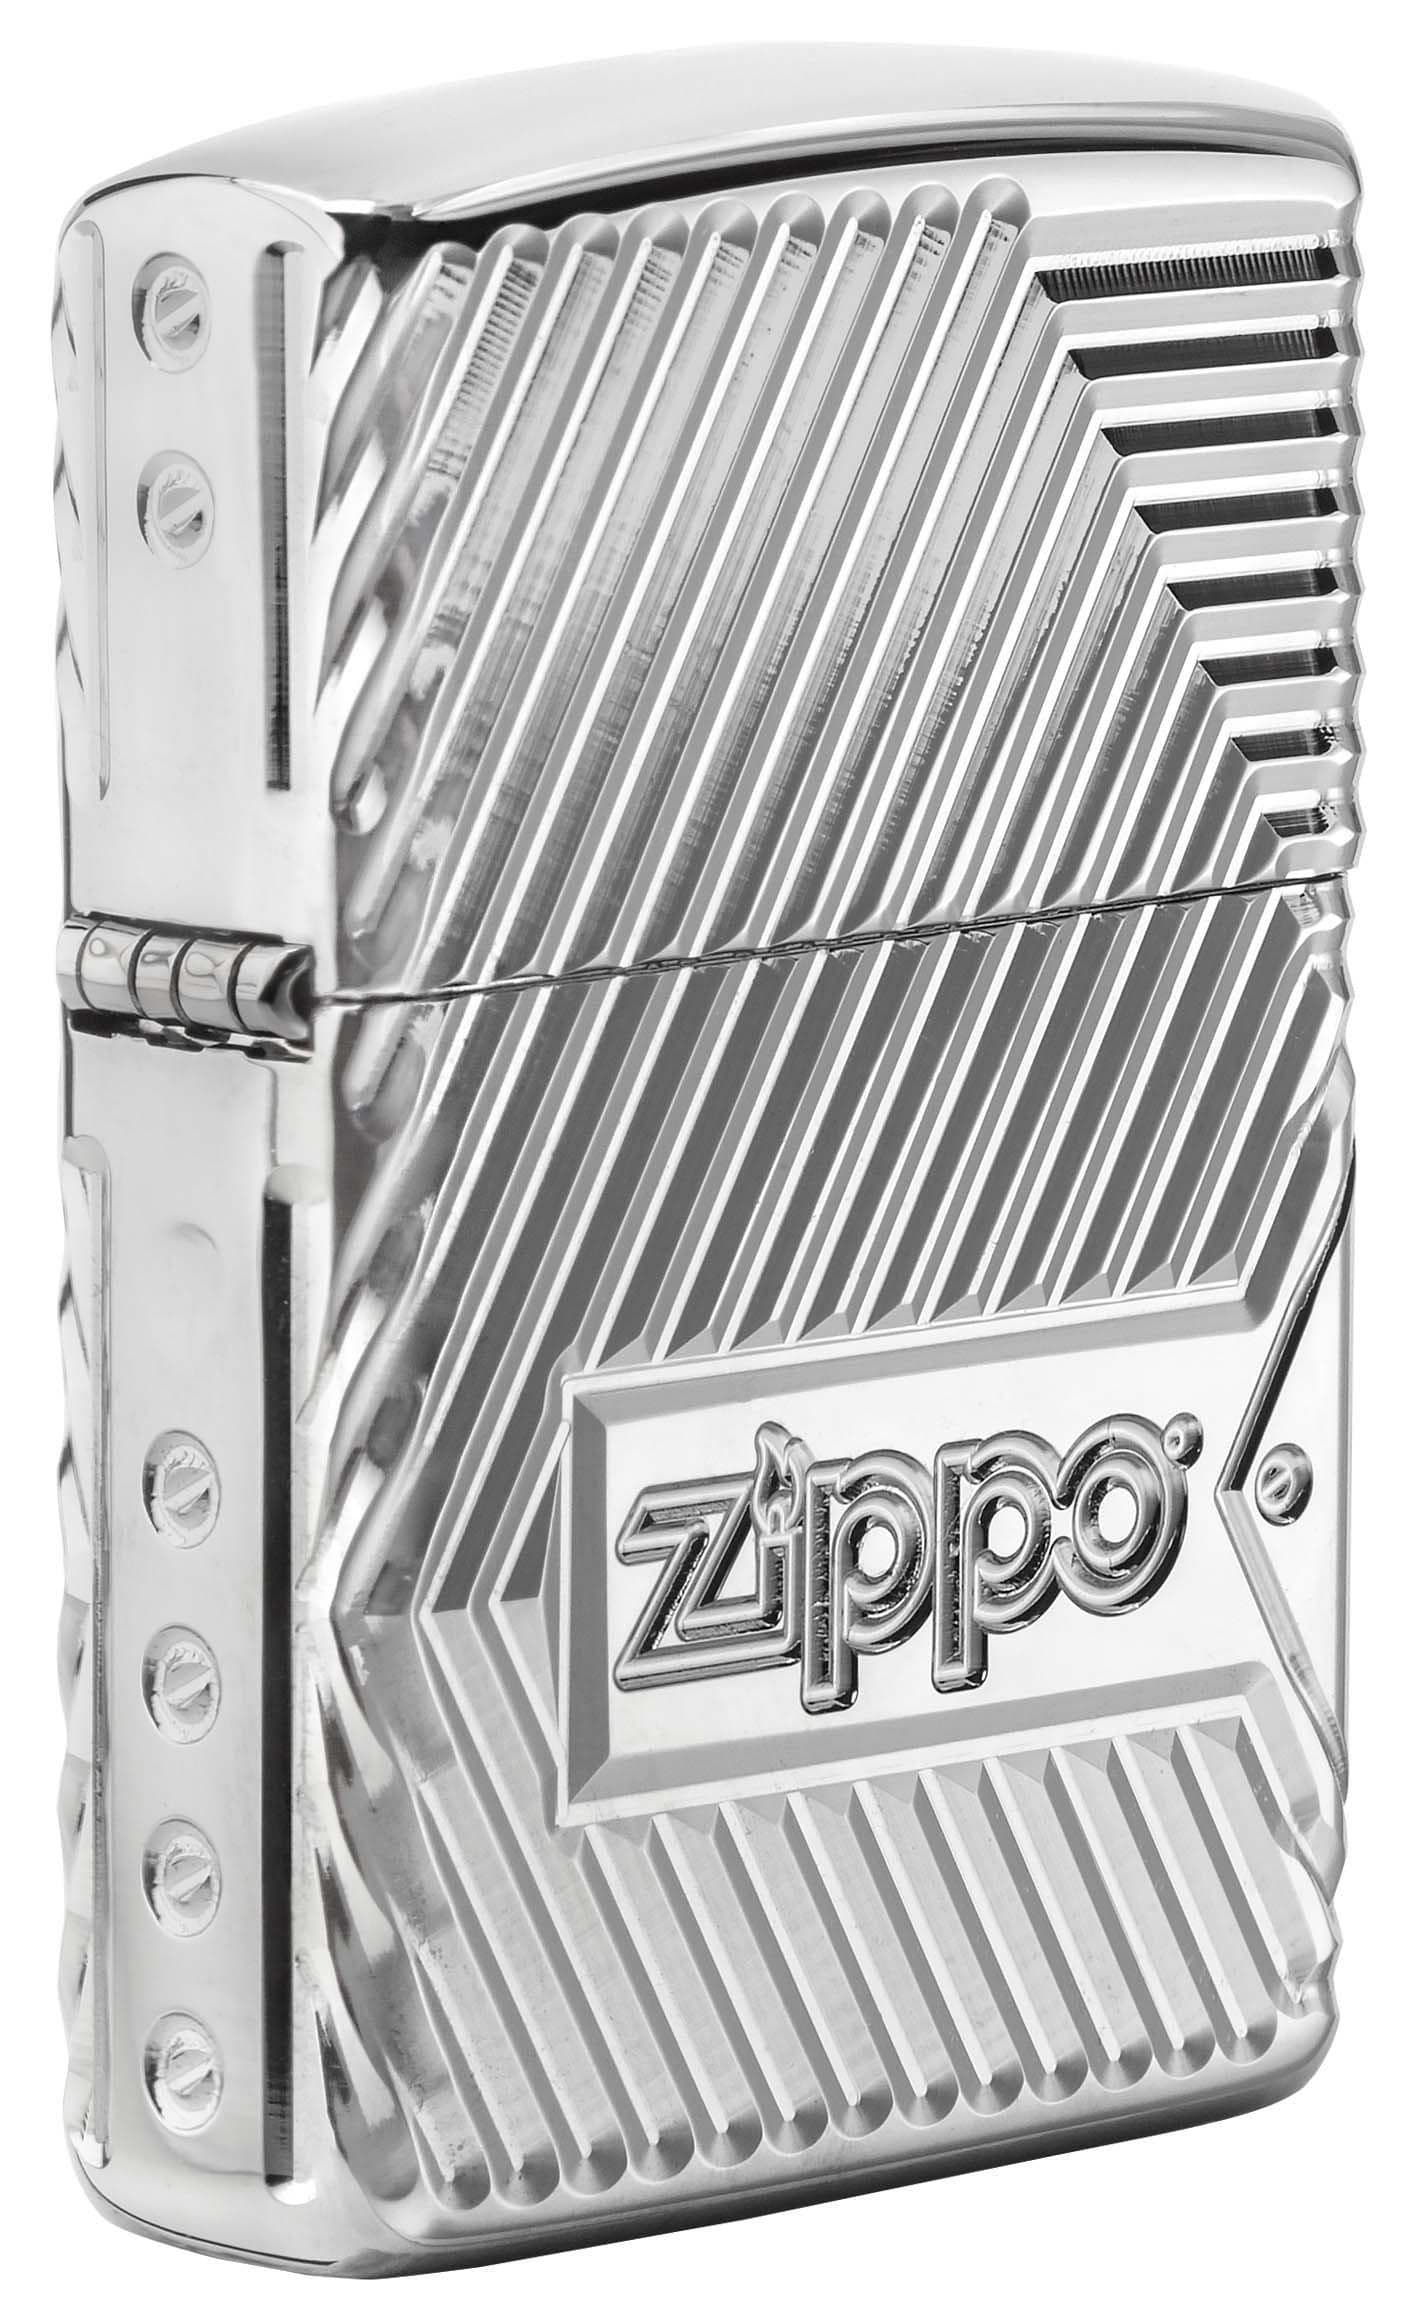 Zippo Lighter: Armor Multicut Bolts and Flame - High Polish Chrome 29672 - Gear Exec